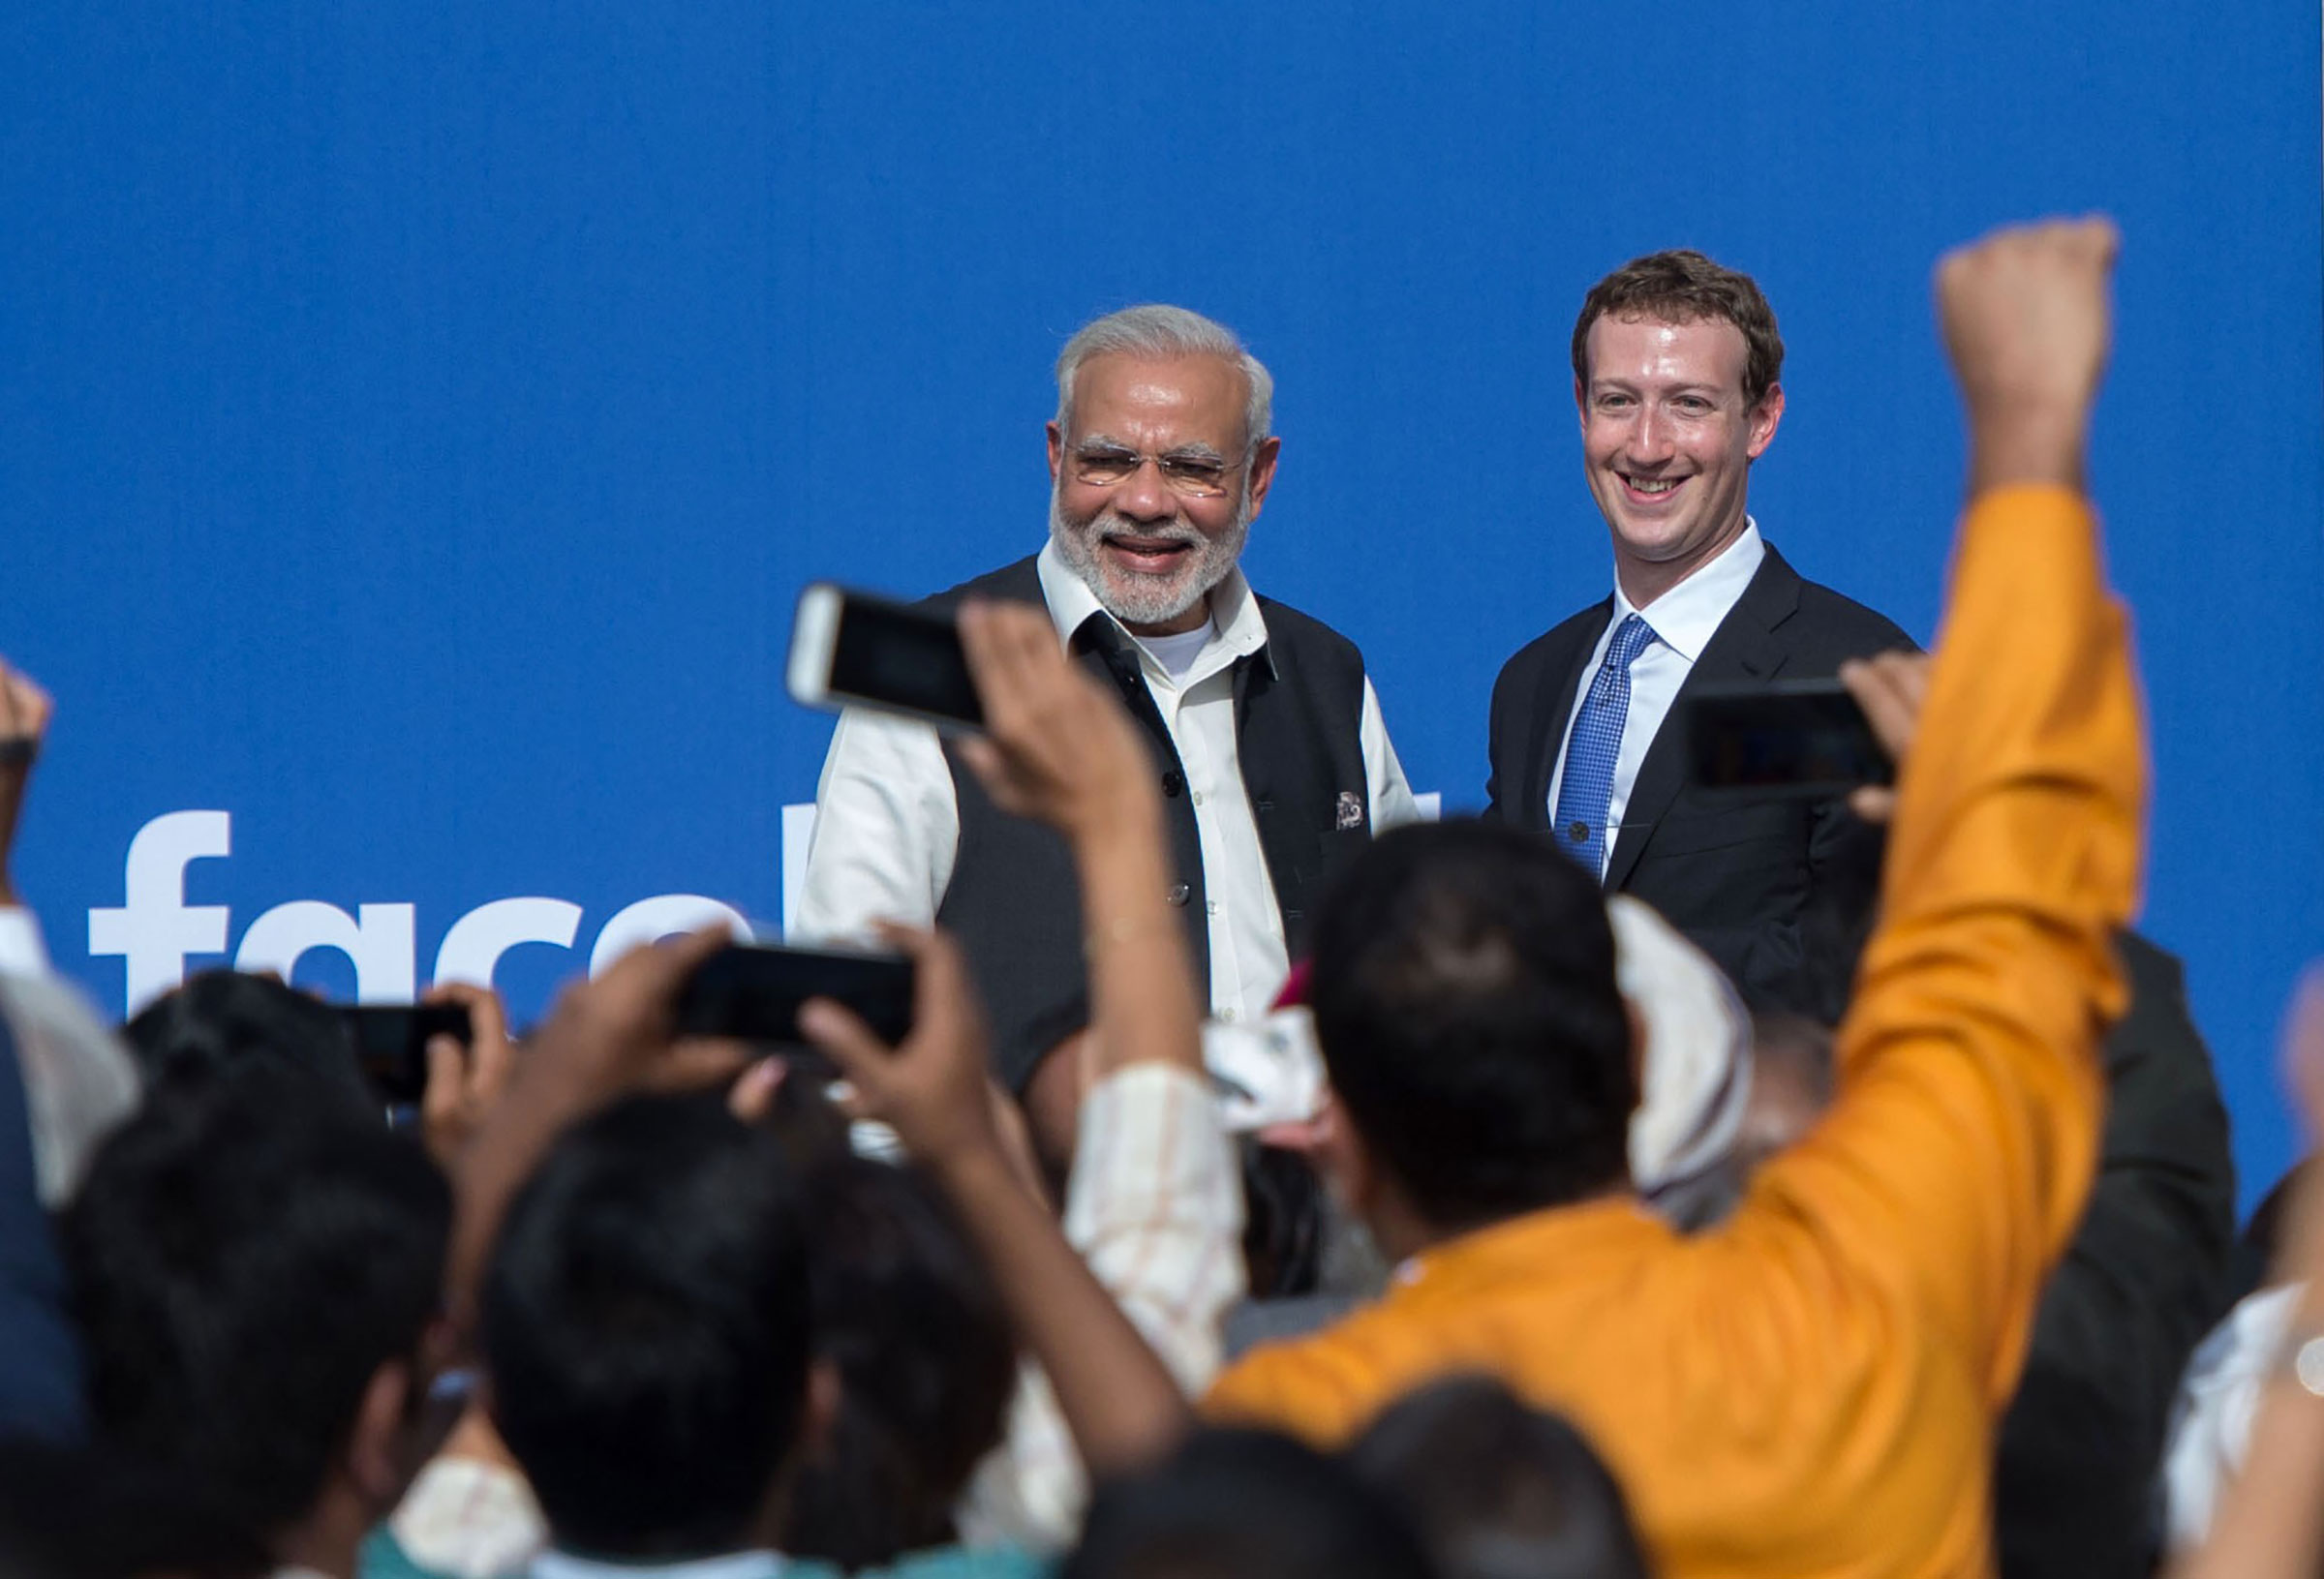 Facebook India's ruling party ties Complicating the fight against hate speech